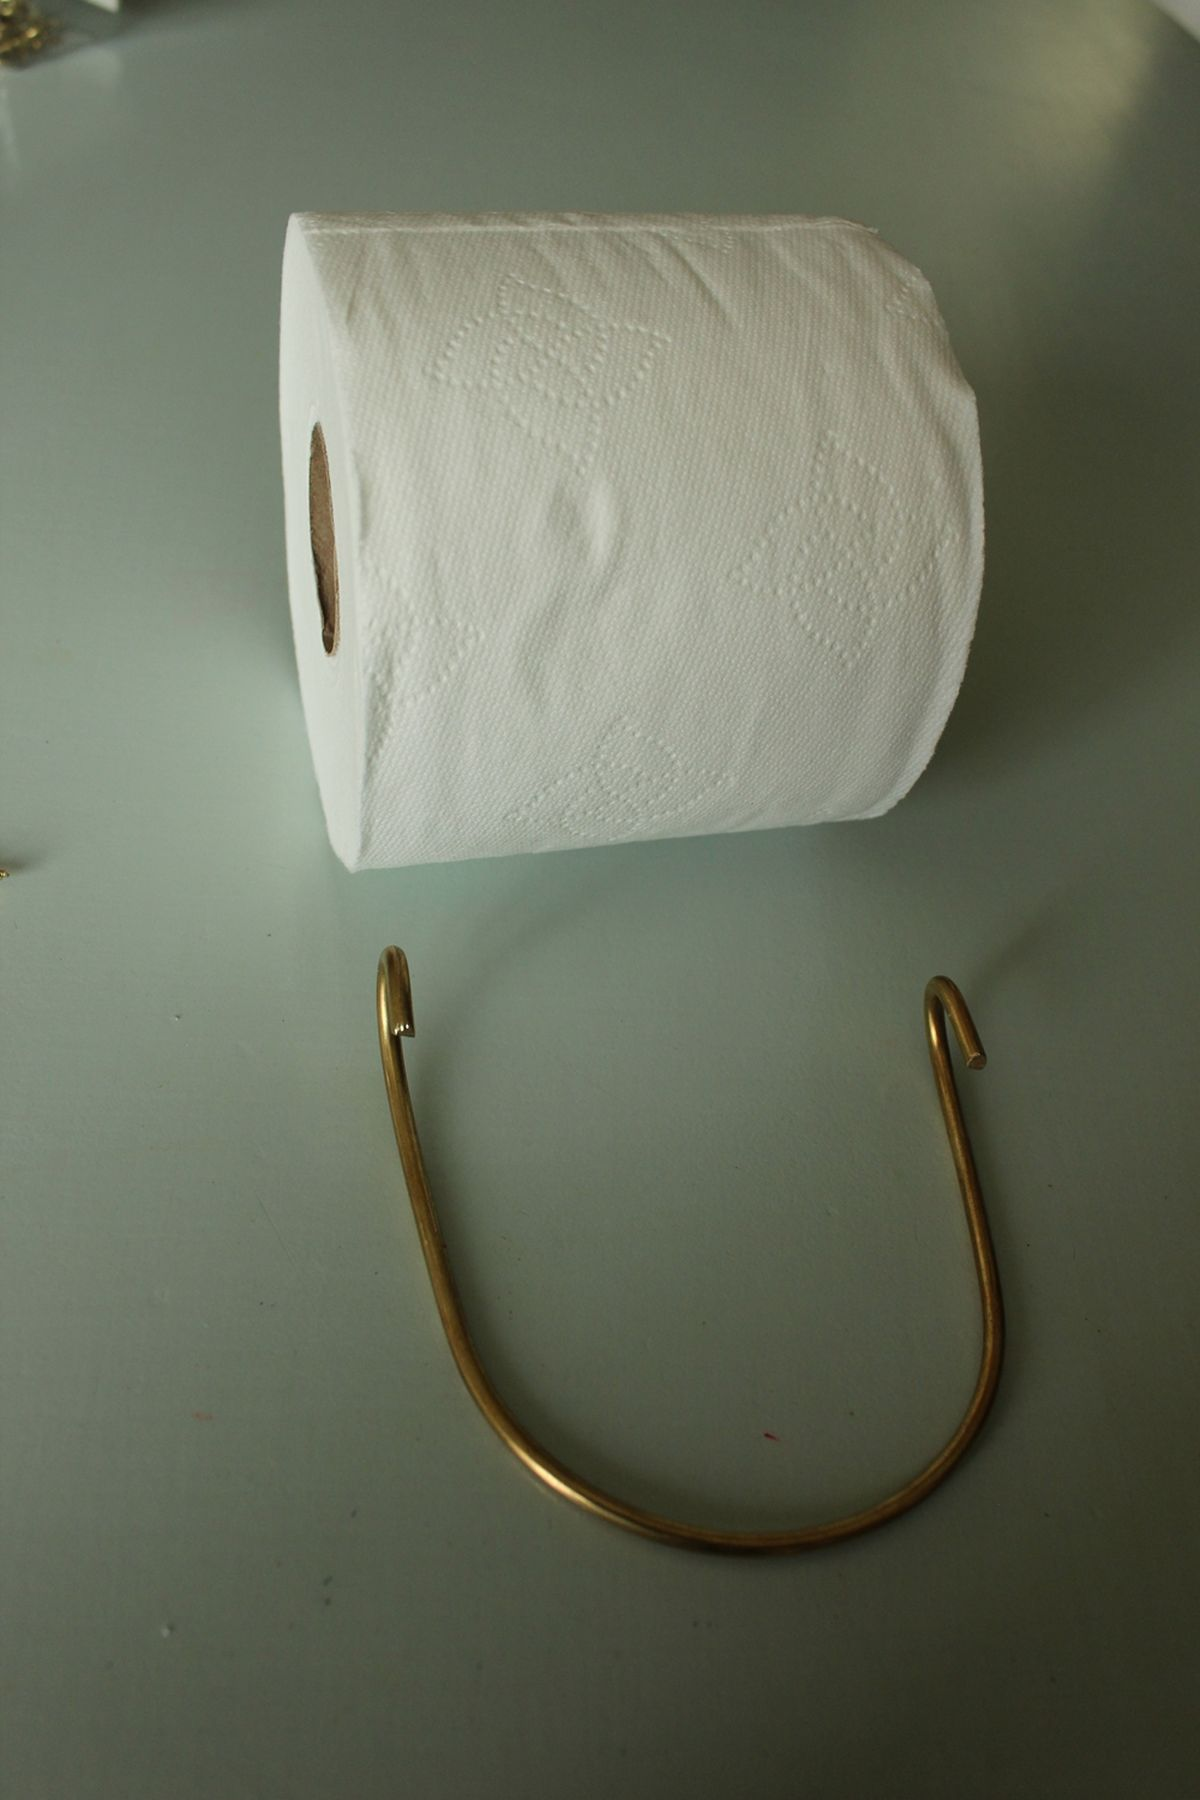 Grab a roll toilet paper